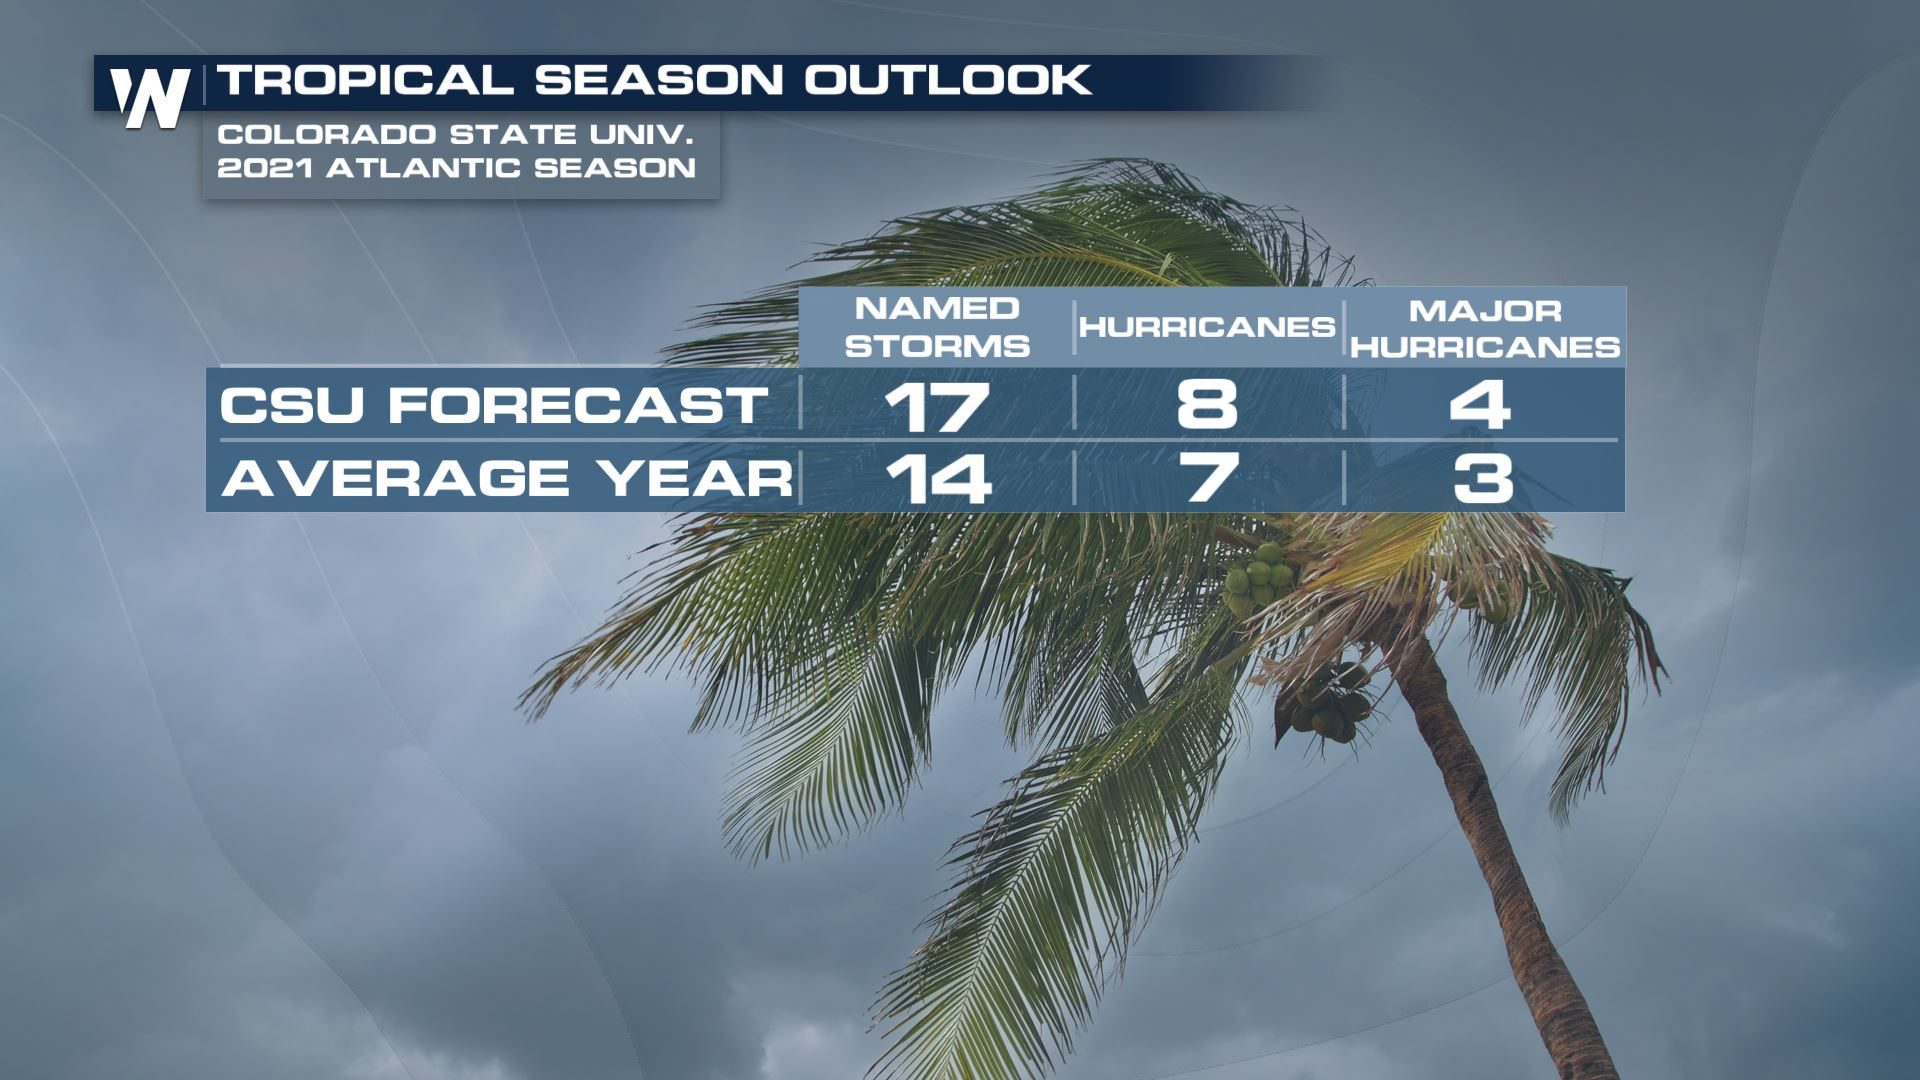 CSU Releases Initial Outlook for 2021 Atlantic Hurricane Season